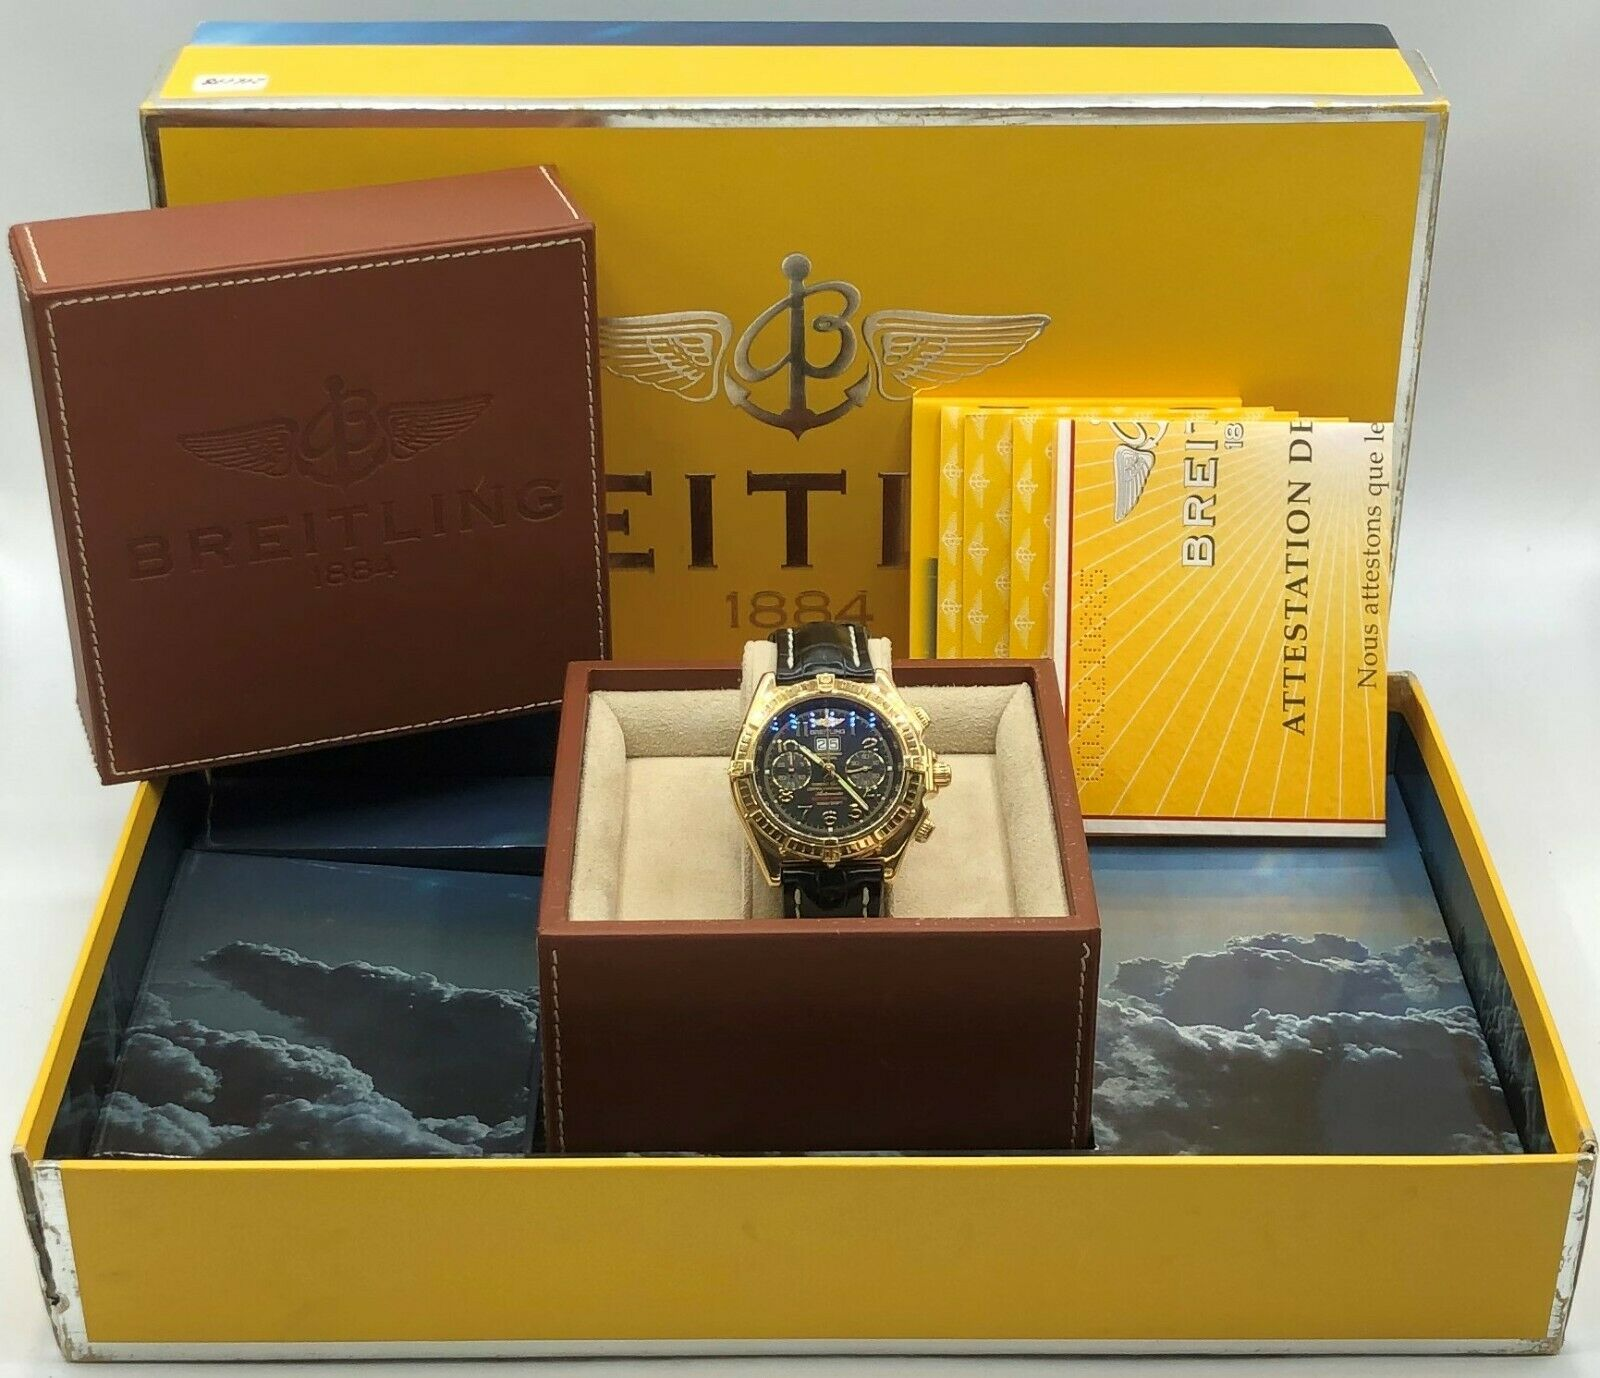 Breitling K44356 Crosswind 18k Yellow Gold Limited Edition Automatic Mens Watch 133527984163 10